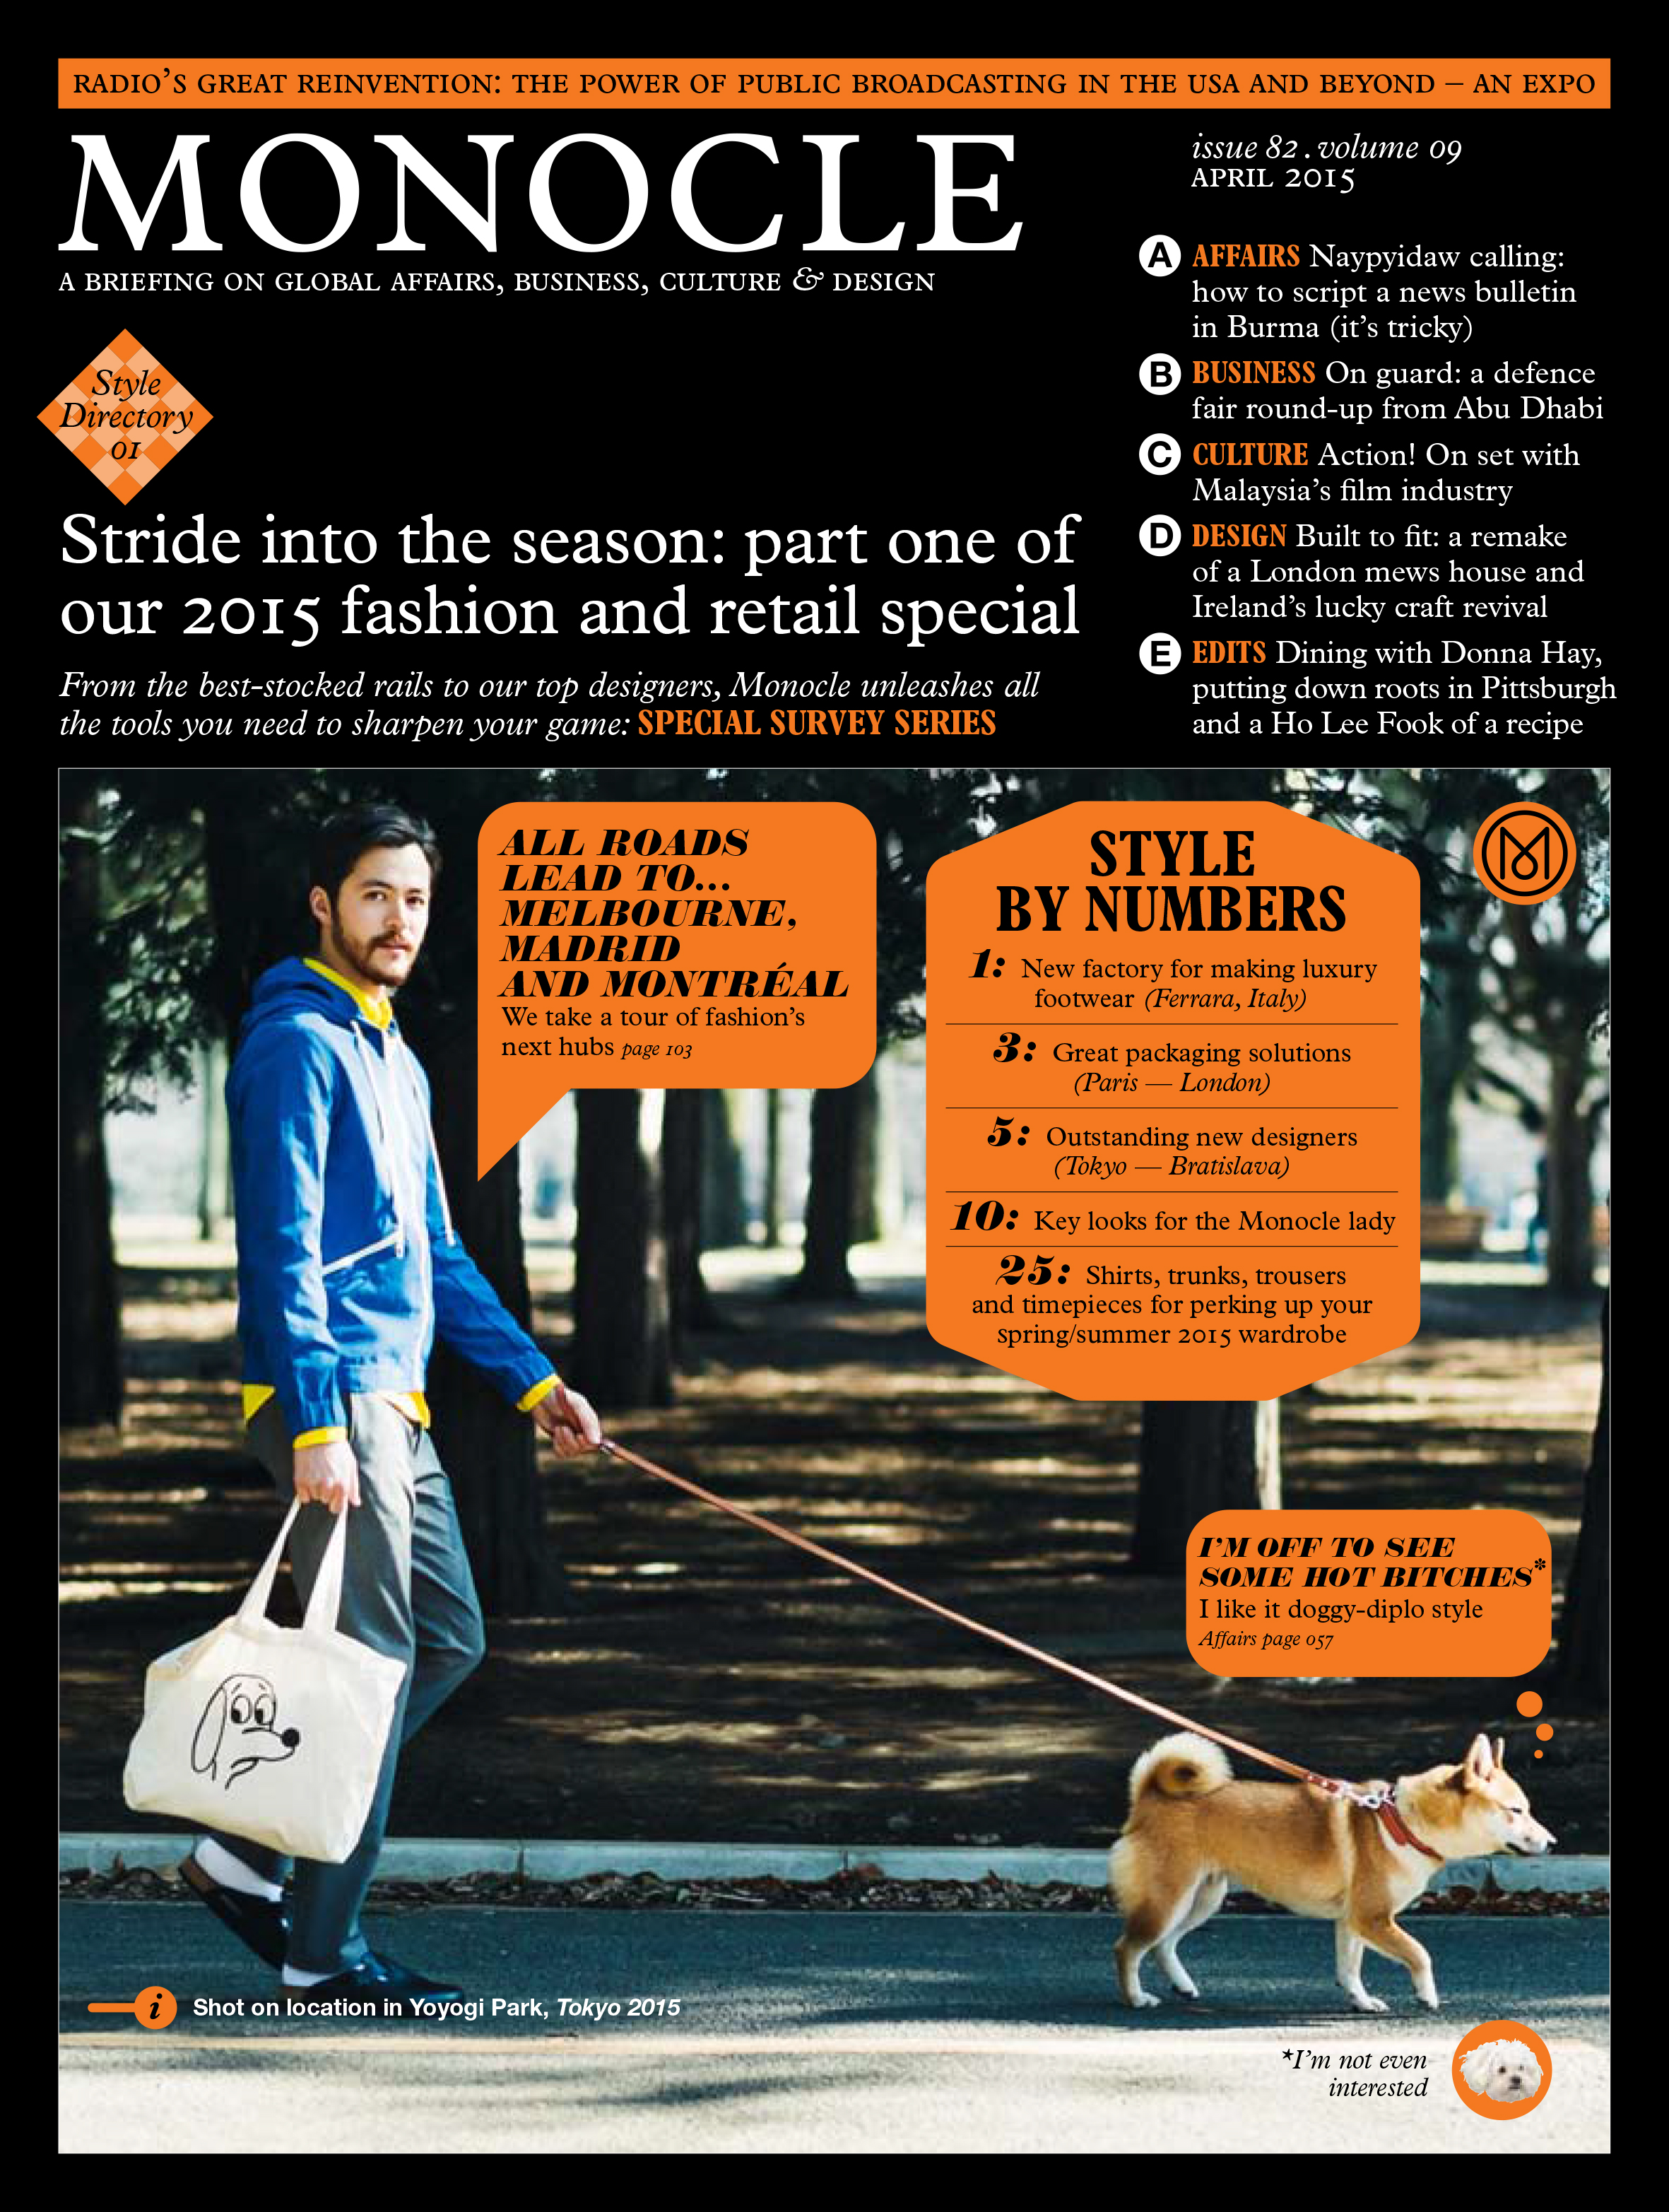 Andrew Moss and several local Lawrenceville, Pittsburgh businesses are featured in the April 2015 issue of  Monocle Magazine .